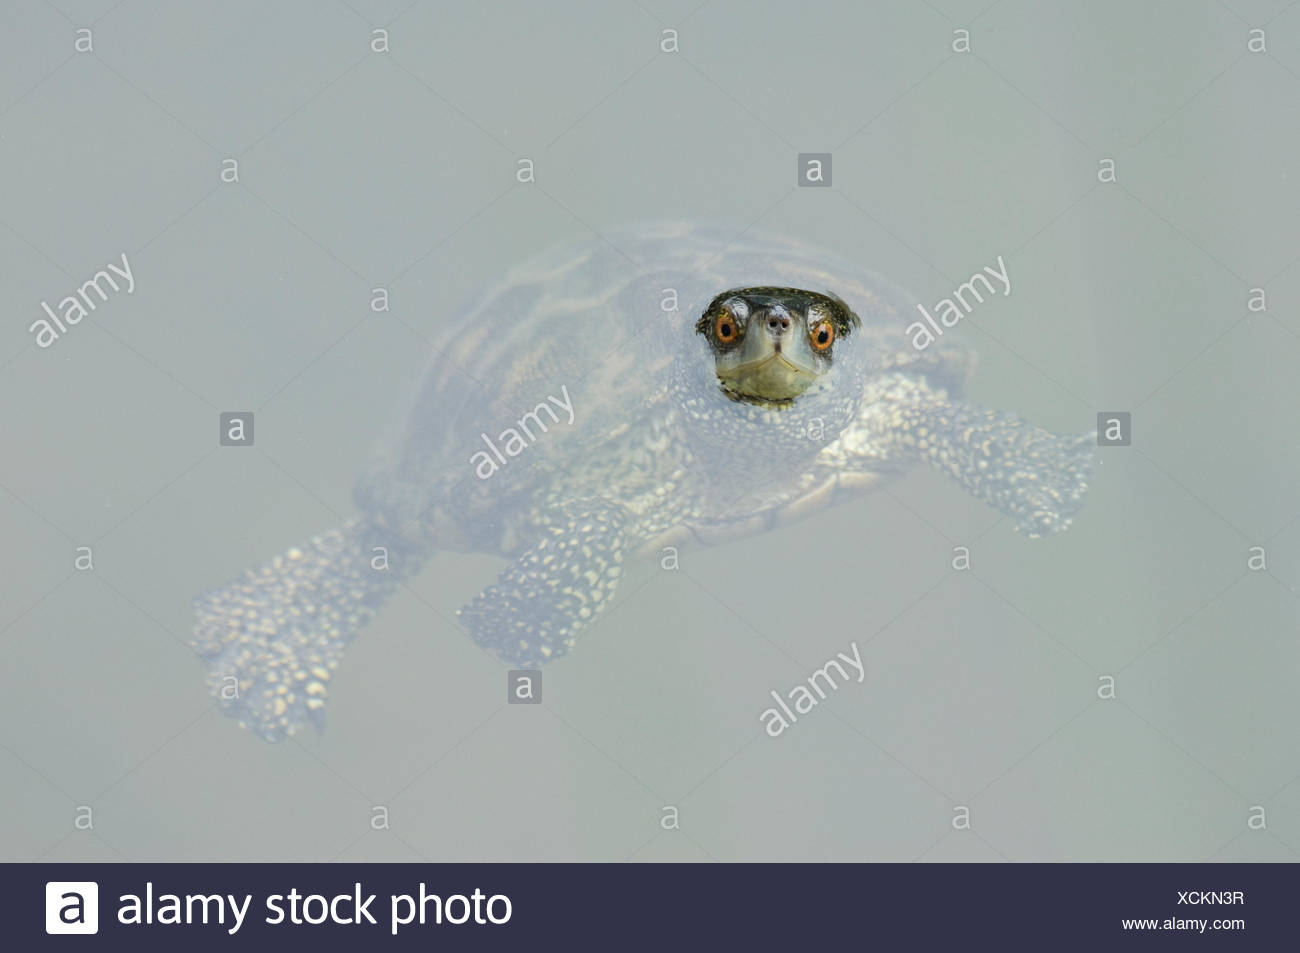 Portrait of Caspian / Stripe necked terrapin (Mauremys caspica) swimming with head above water, Lesbos, Greece - Stock Image